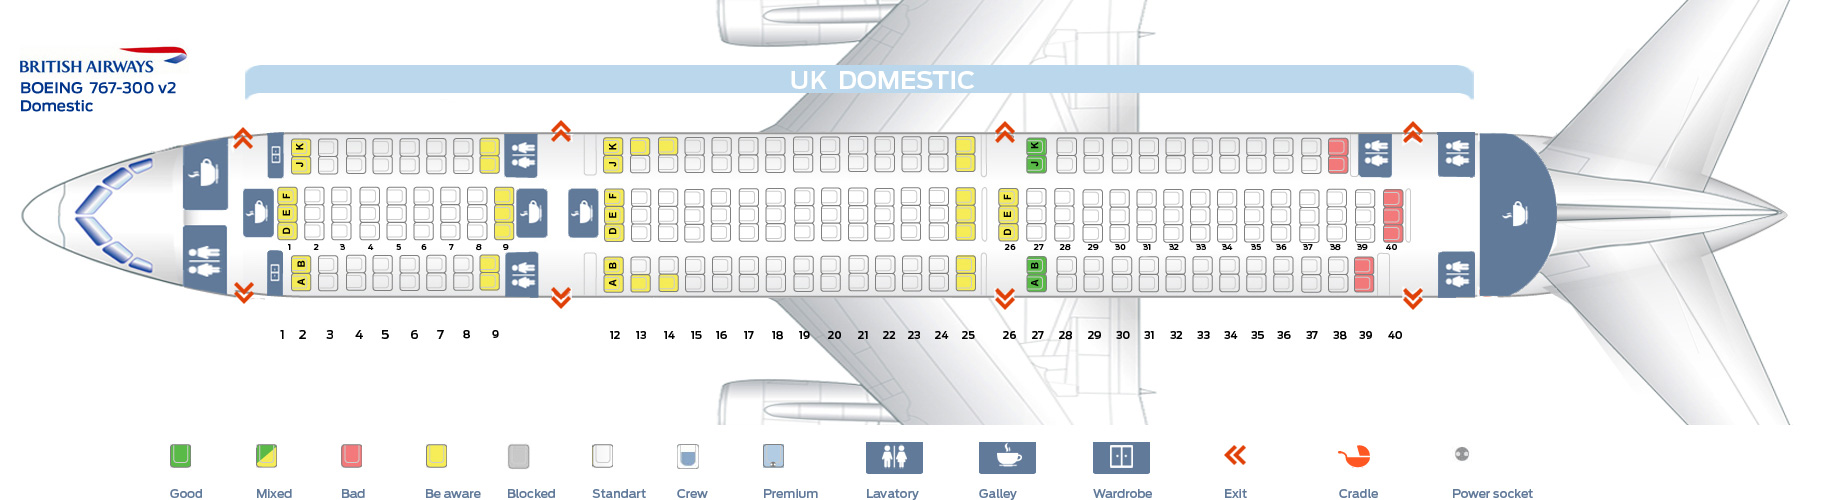 Seat_map_British_Airways_Boeing-767_300_v2_Domestic